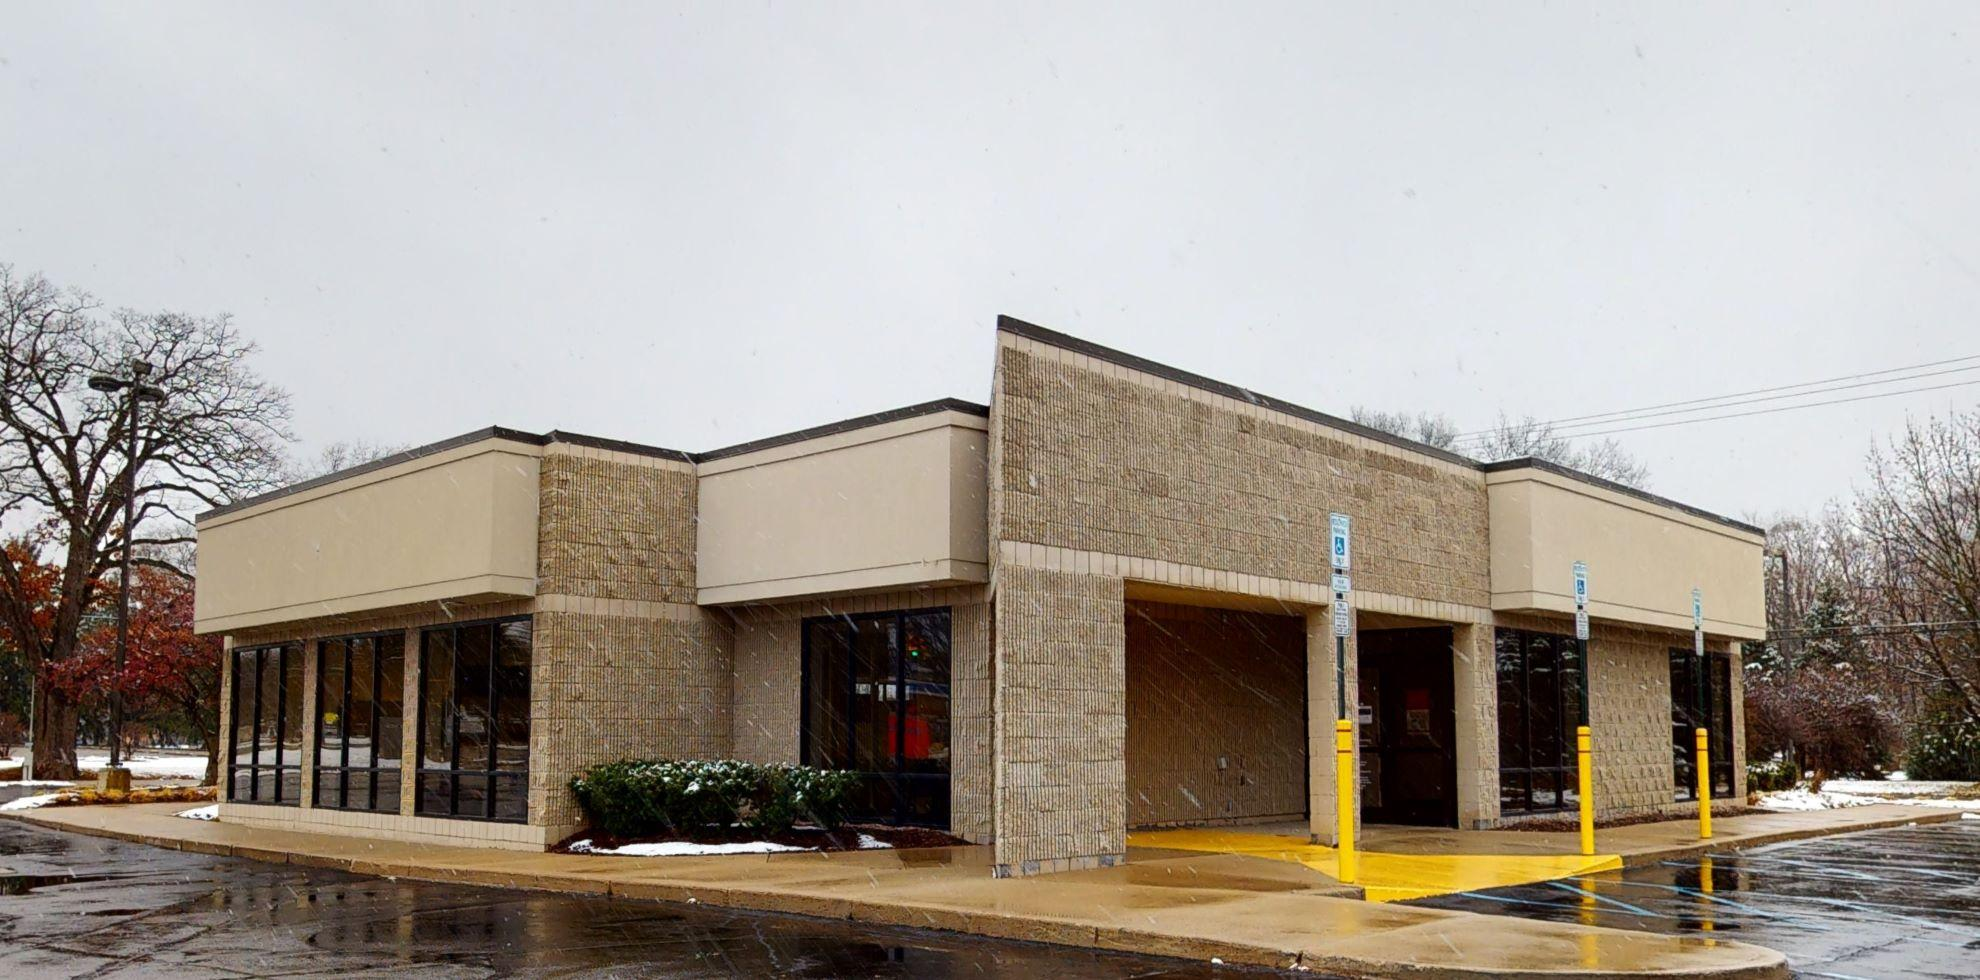 Bank of America financial center with drive-thru ATM   4660 24 Mile Rd, Shelby Township, MI 48316